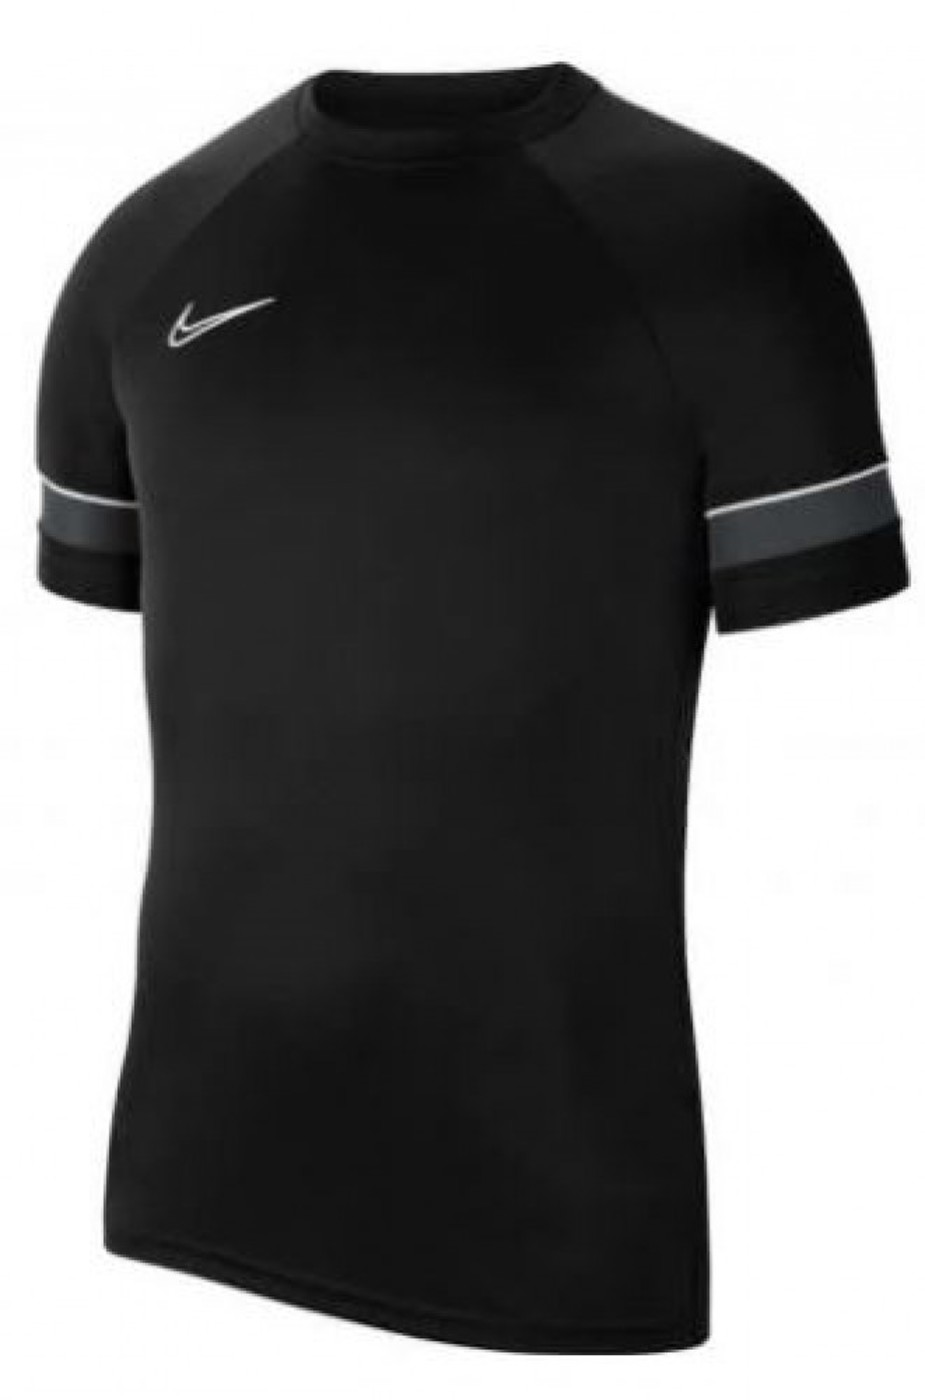 Nike Dri-FIT Academy Big - Kinder